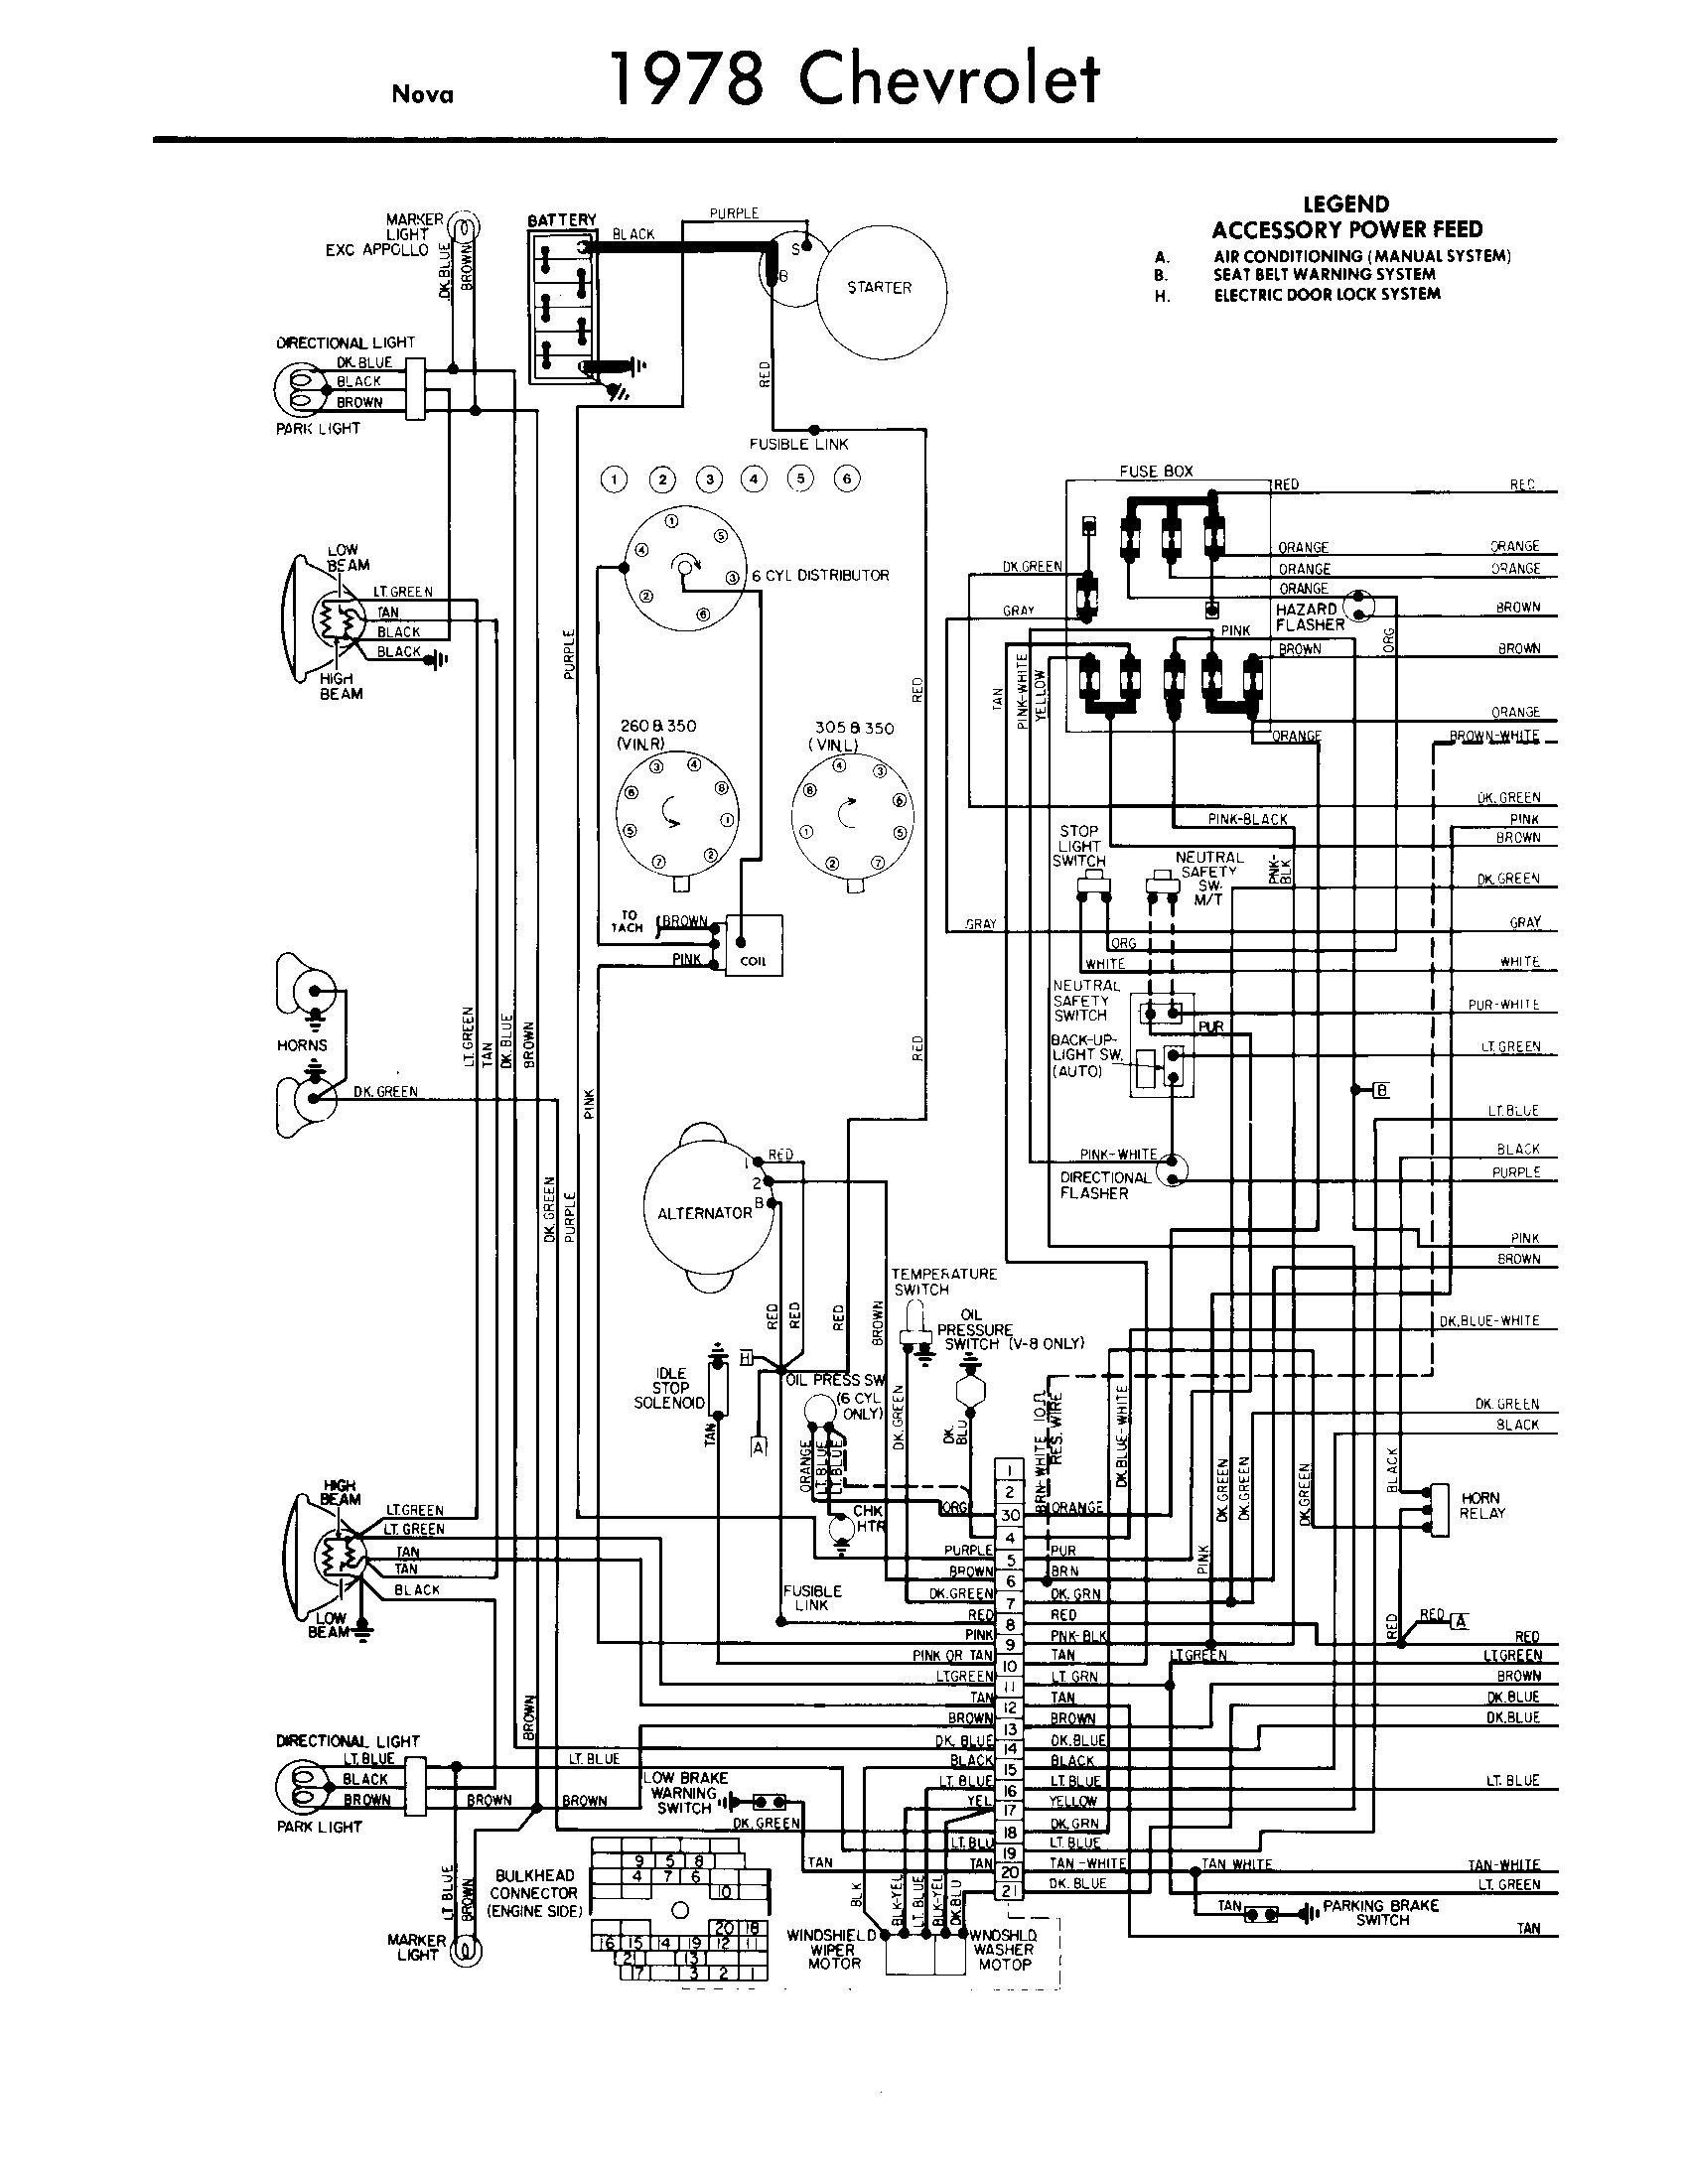 1978 Chevy Truck Wiring Diagram 1977 Chevy Truck Alternator Wiring Diagram Wiring Data Of 1978 Chevy Truck Wiring Diagram 1993 toyota Pickup Engine Diagram 78 Chevy Starter Diagram Wiring